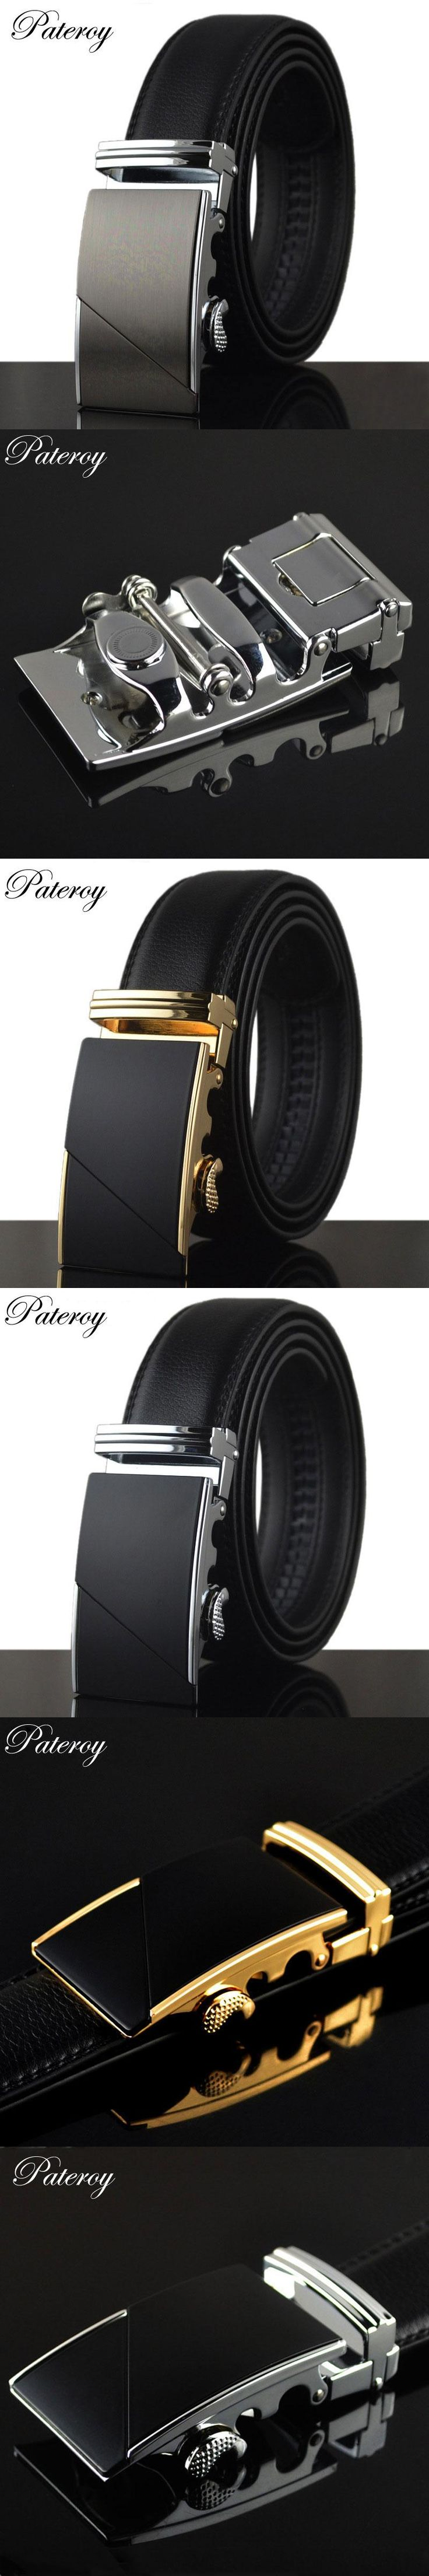 [PATEROY] Belt Designer Belts Men High Quality Ceinture Homme Luxury Cow Leather Belt Men Ceinture Automatic Buckle Silver Kemer